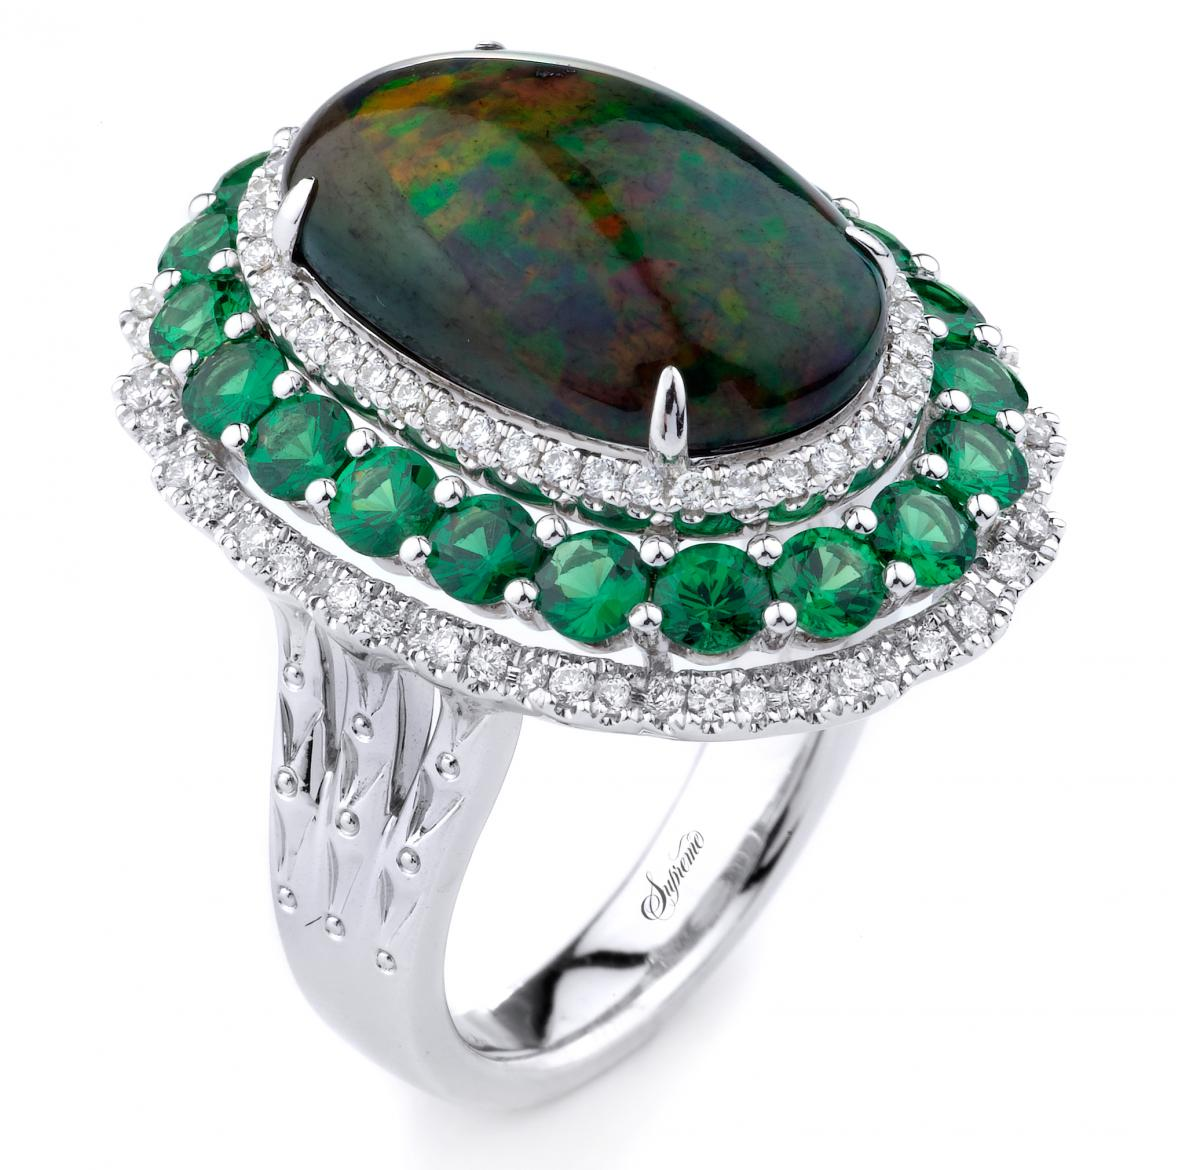 Supreme Jewelry opal and tsavorite cocktail ring